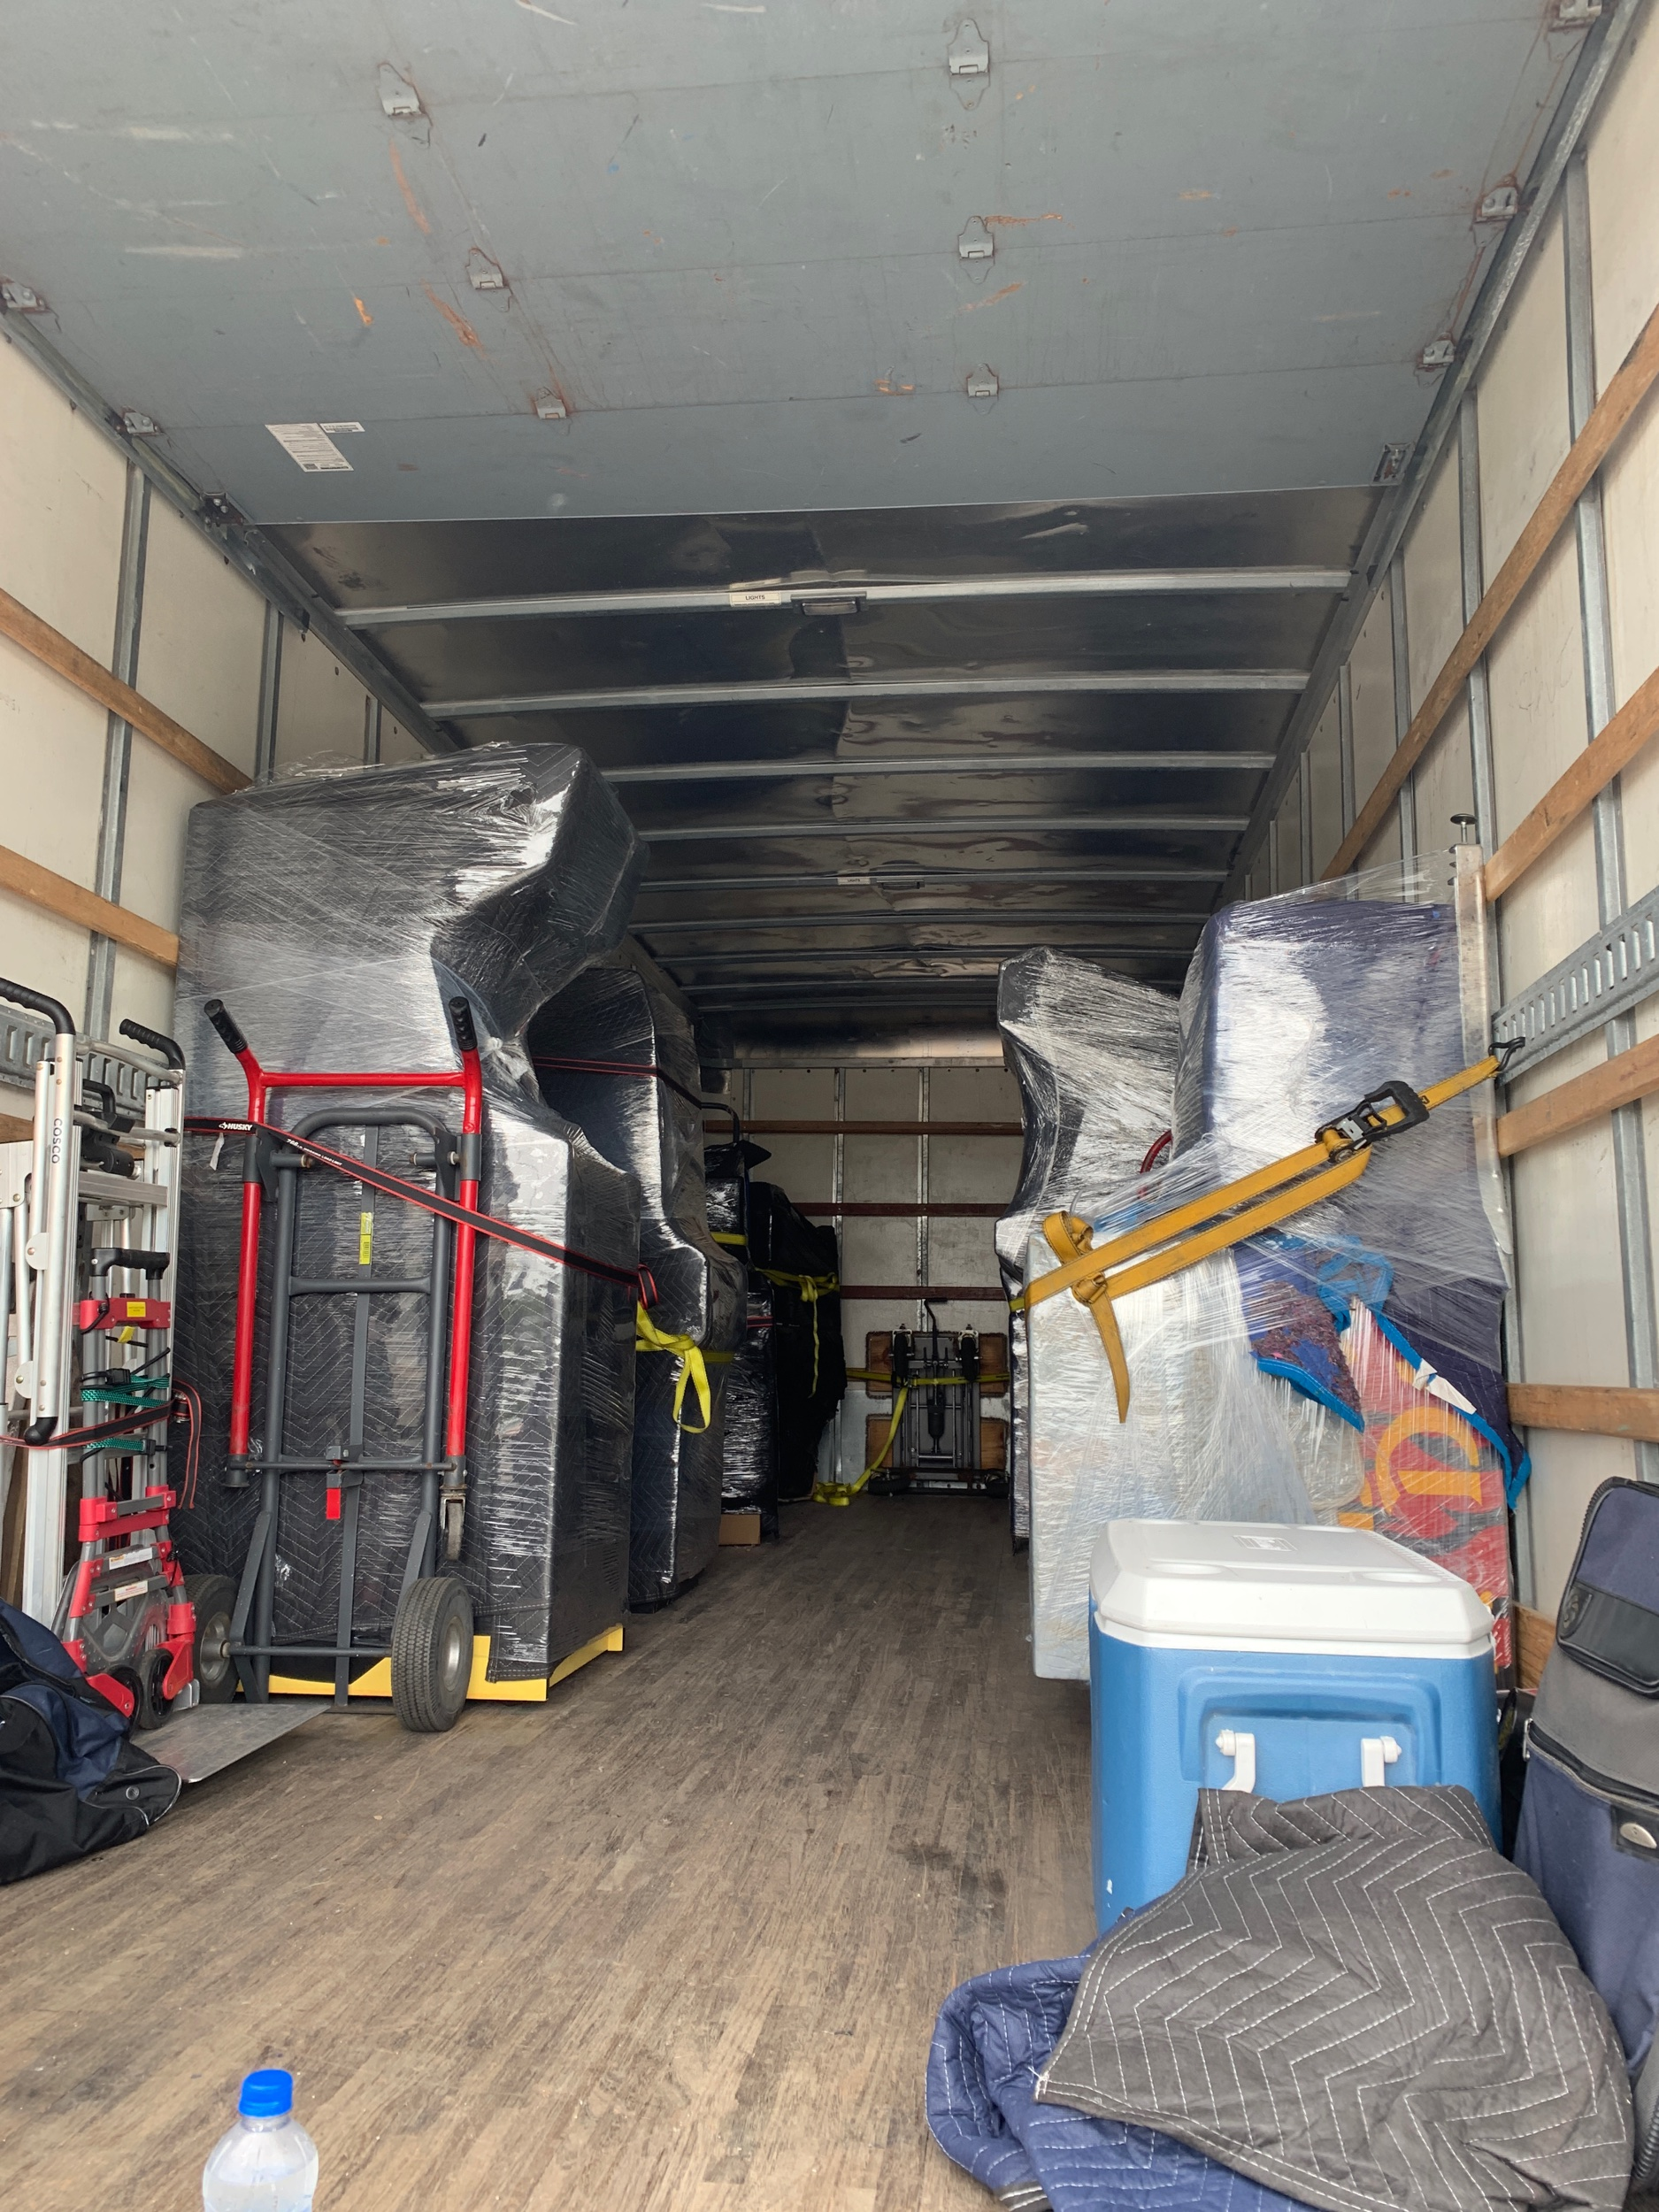 6 or so hours later, 9 games, 4 hand-trucks, a mars-rover & sundries are secured on the new truck and ready to roll!